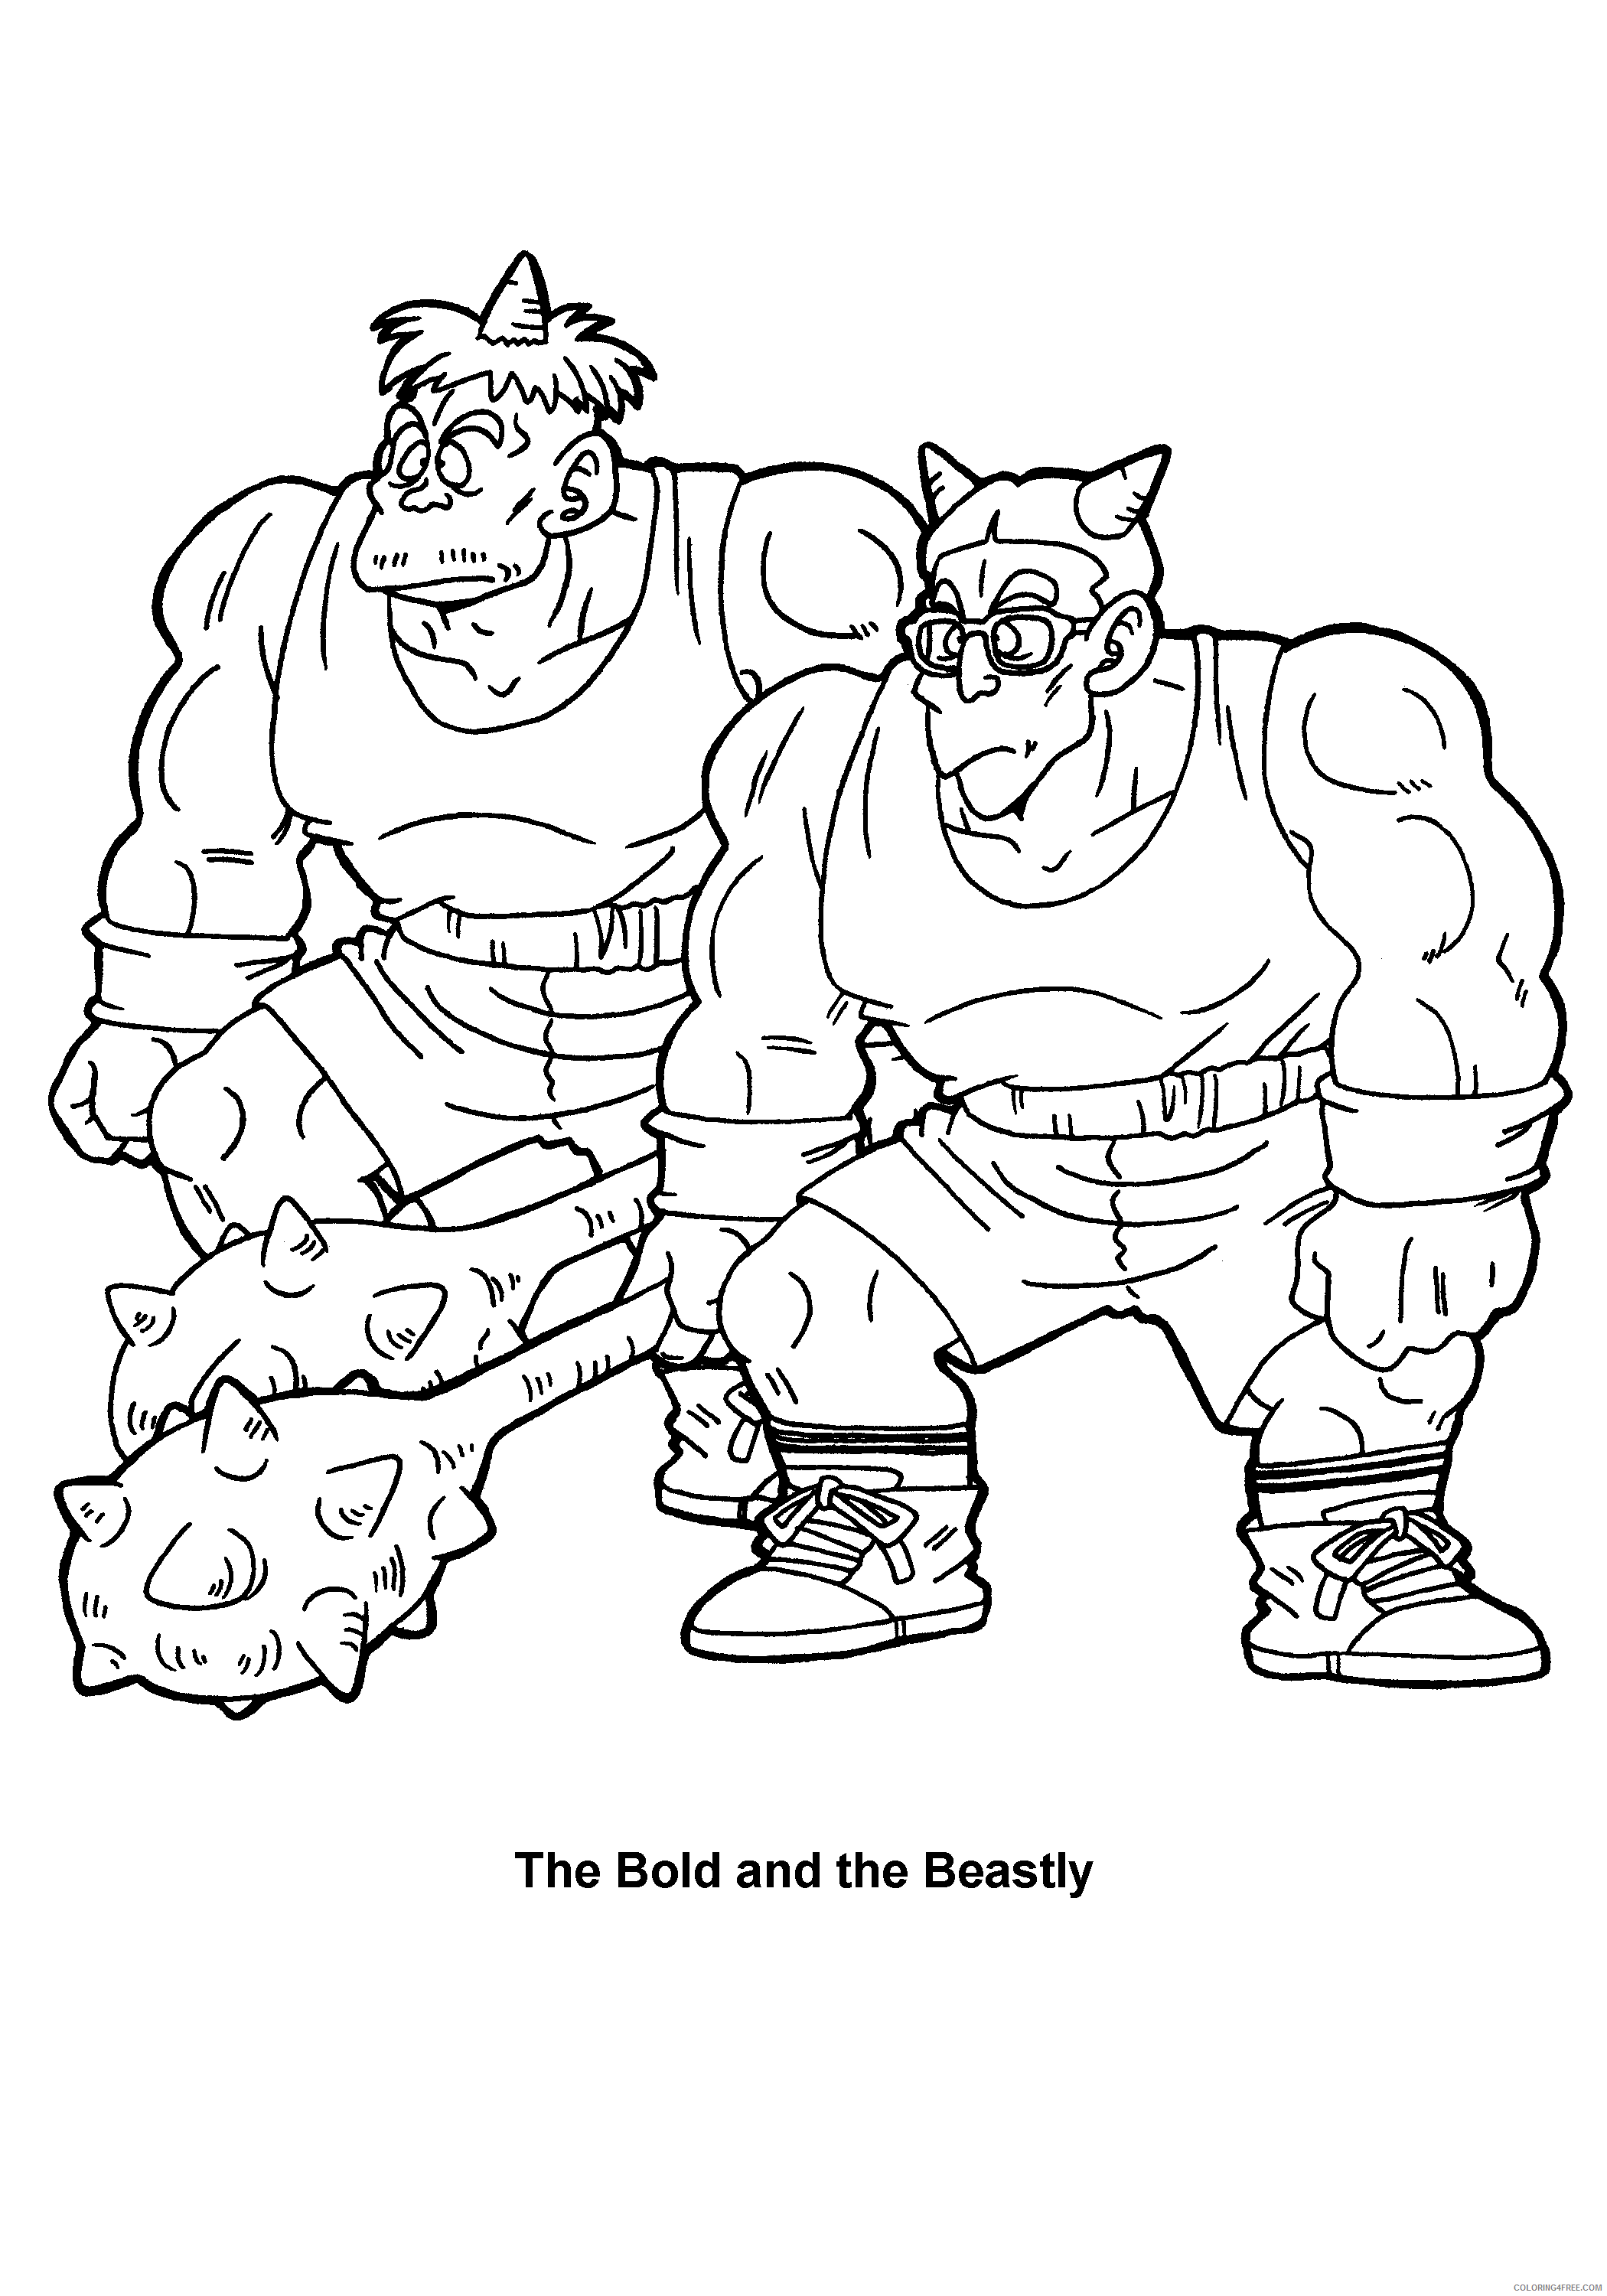 056 dragon ball z the bold and the beasty Printable Coloring4free